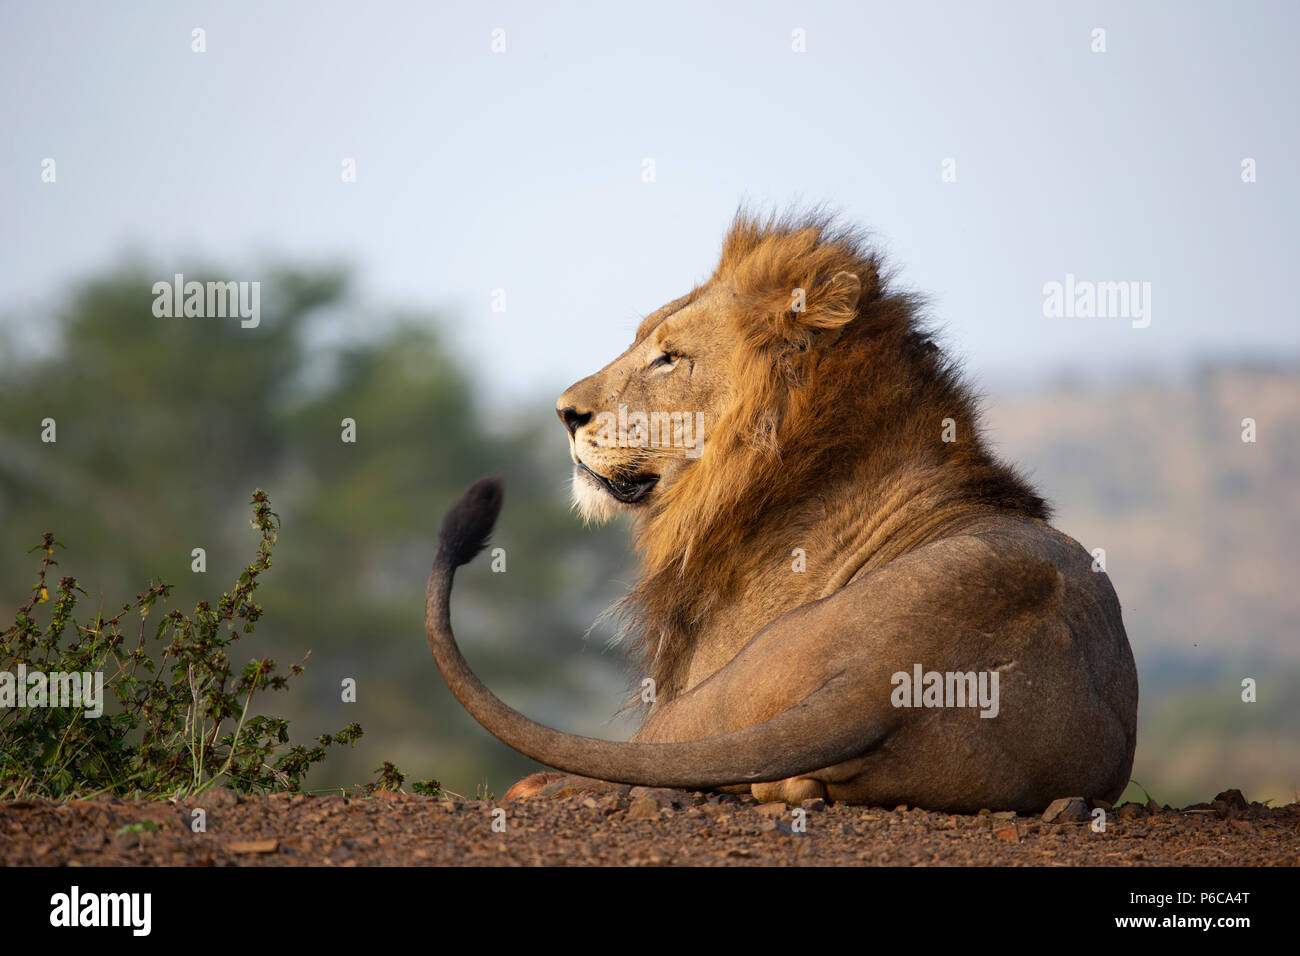 Male Lion Panthera leo resting in the early sunlight in Zimanga private game reserve, South Africa - Stock Image